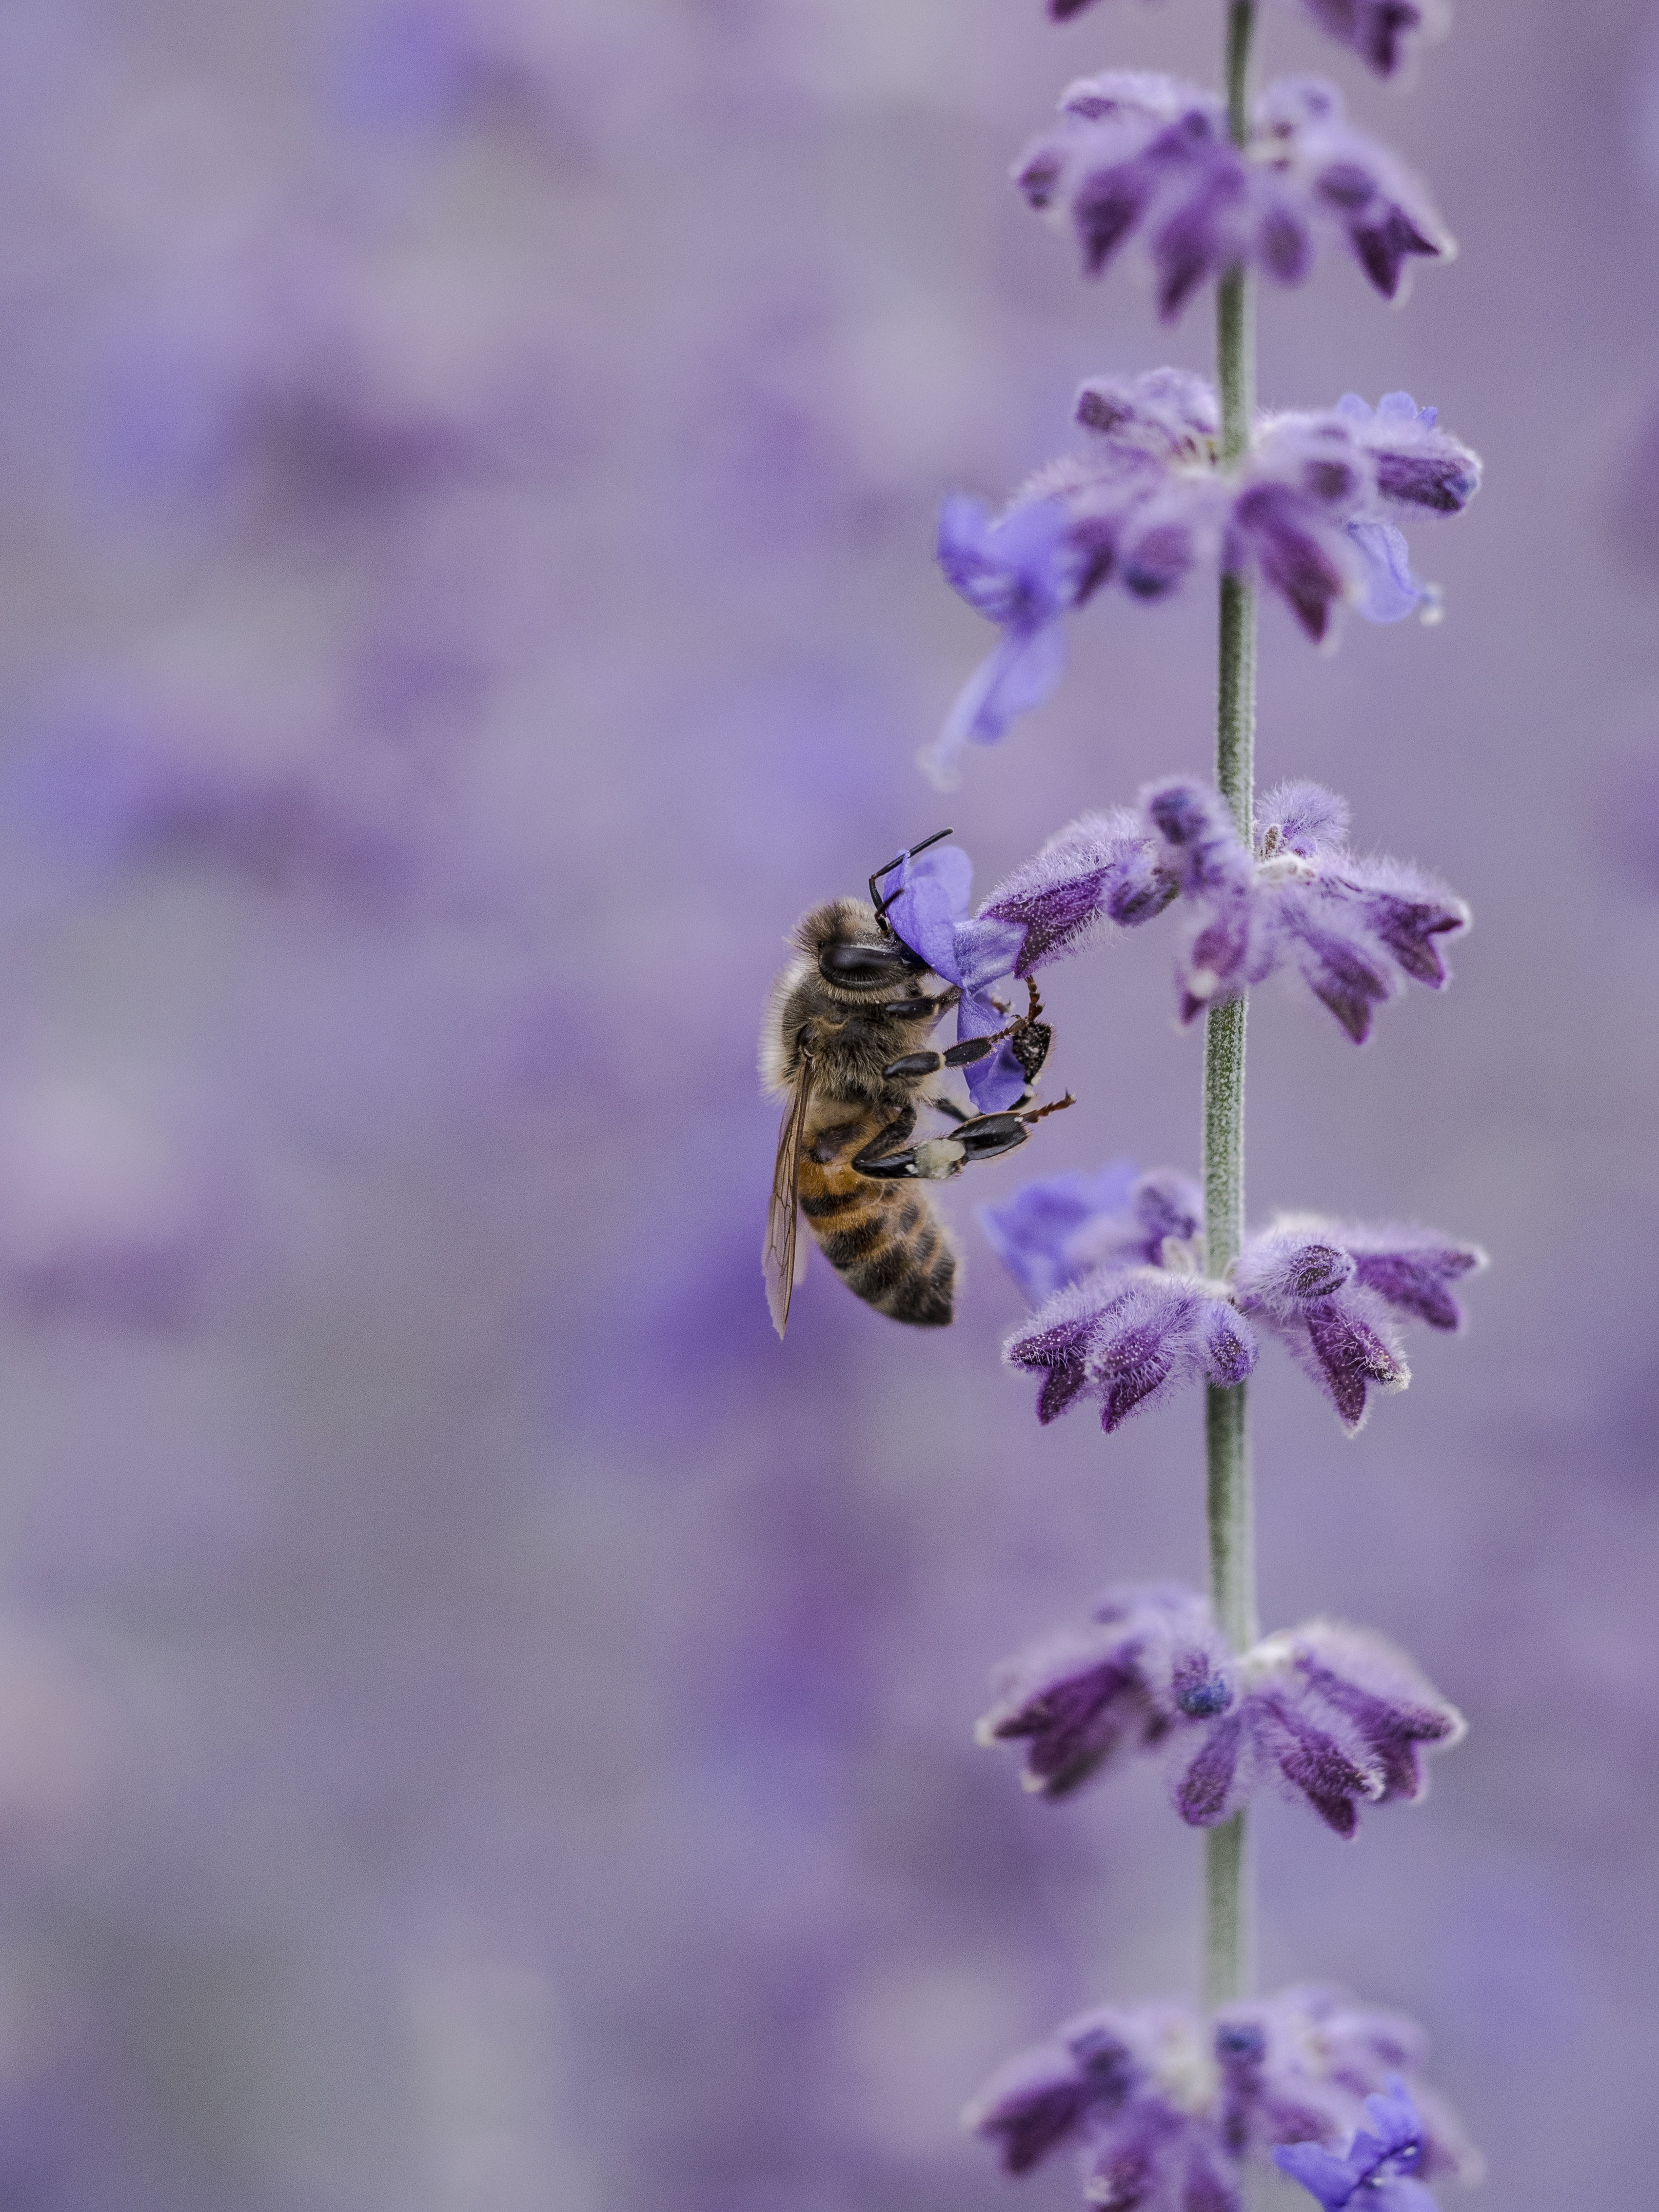 Honeybee pollinates a fuzzy purple flower in a field